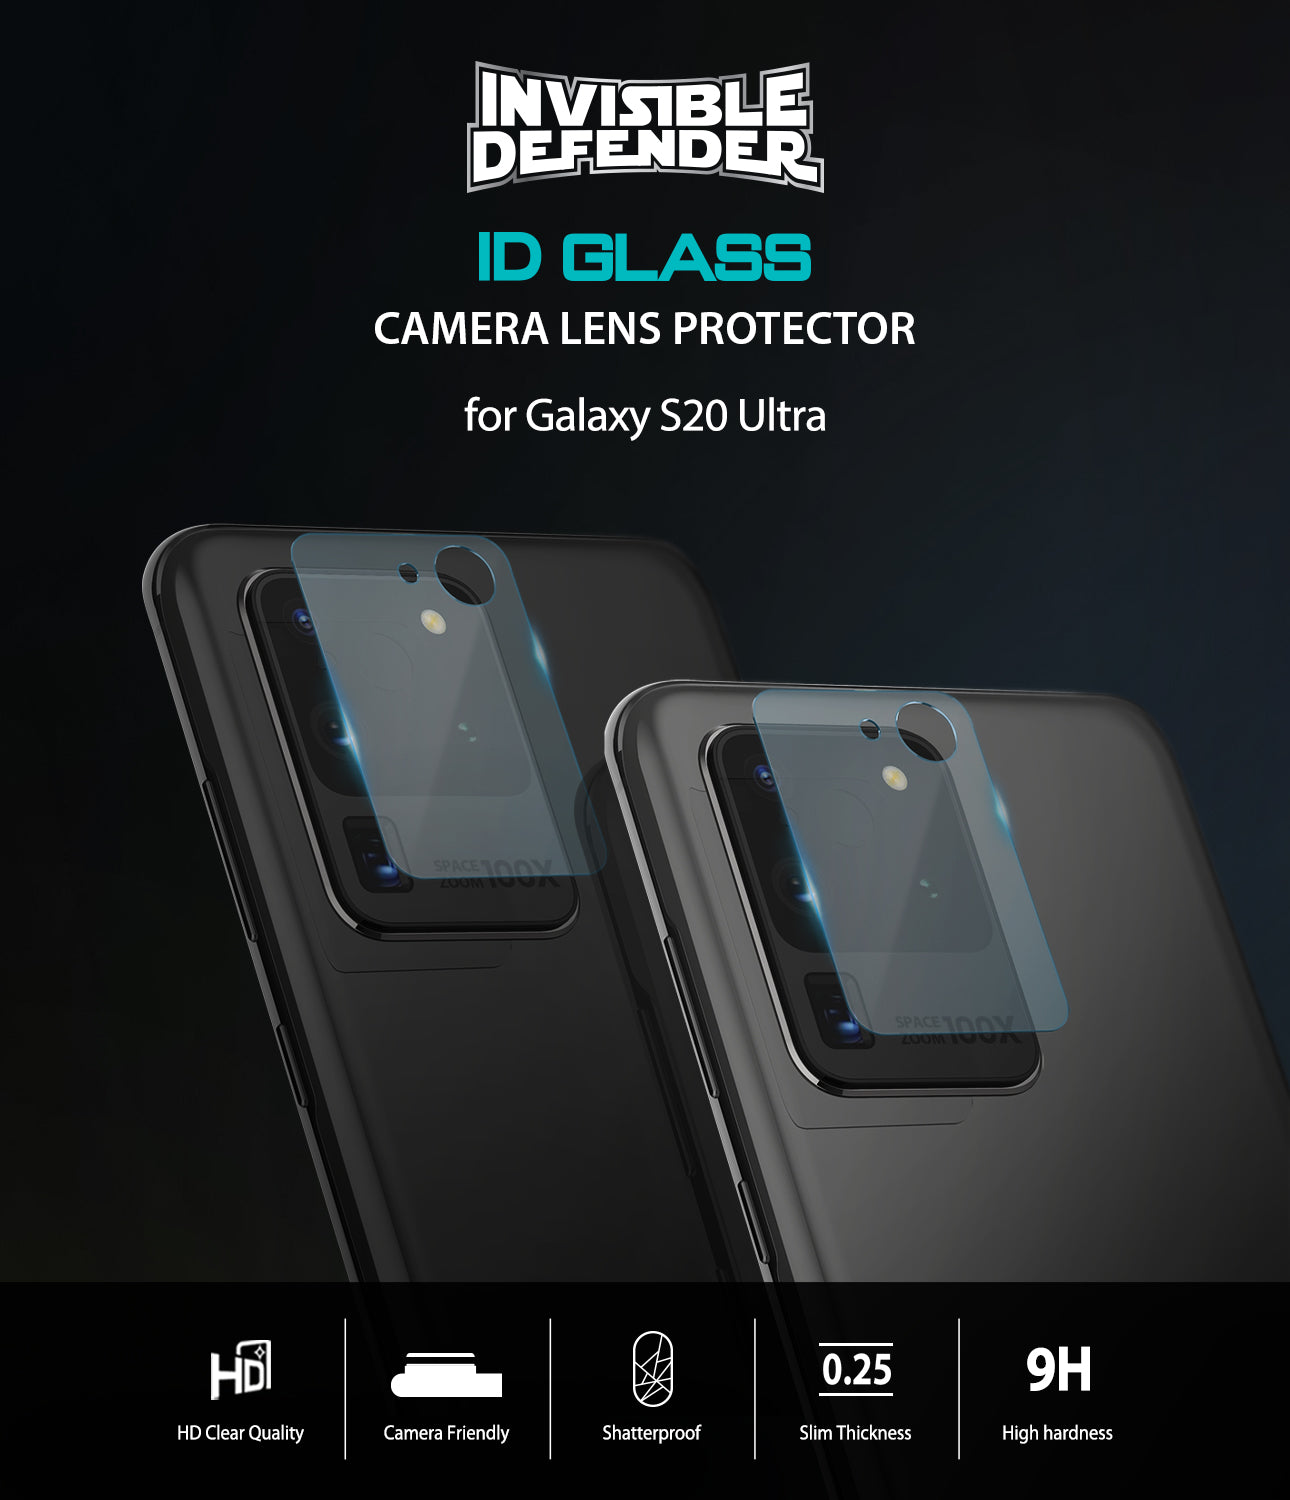 samsung galaxy s20 ultra camera lens protector ringke invisible defender tempered glass